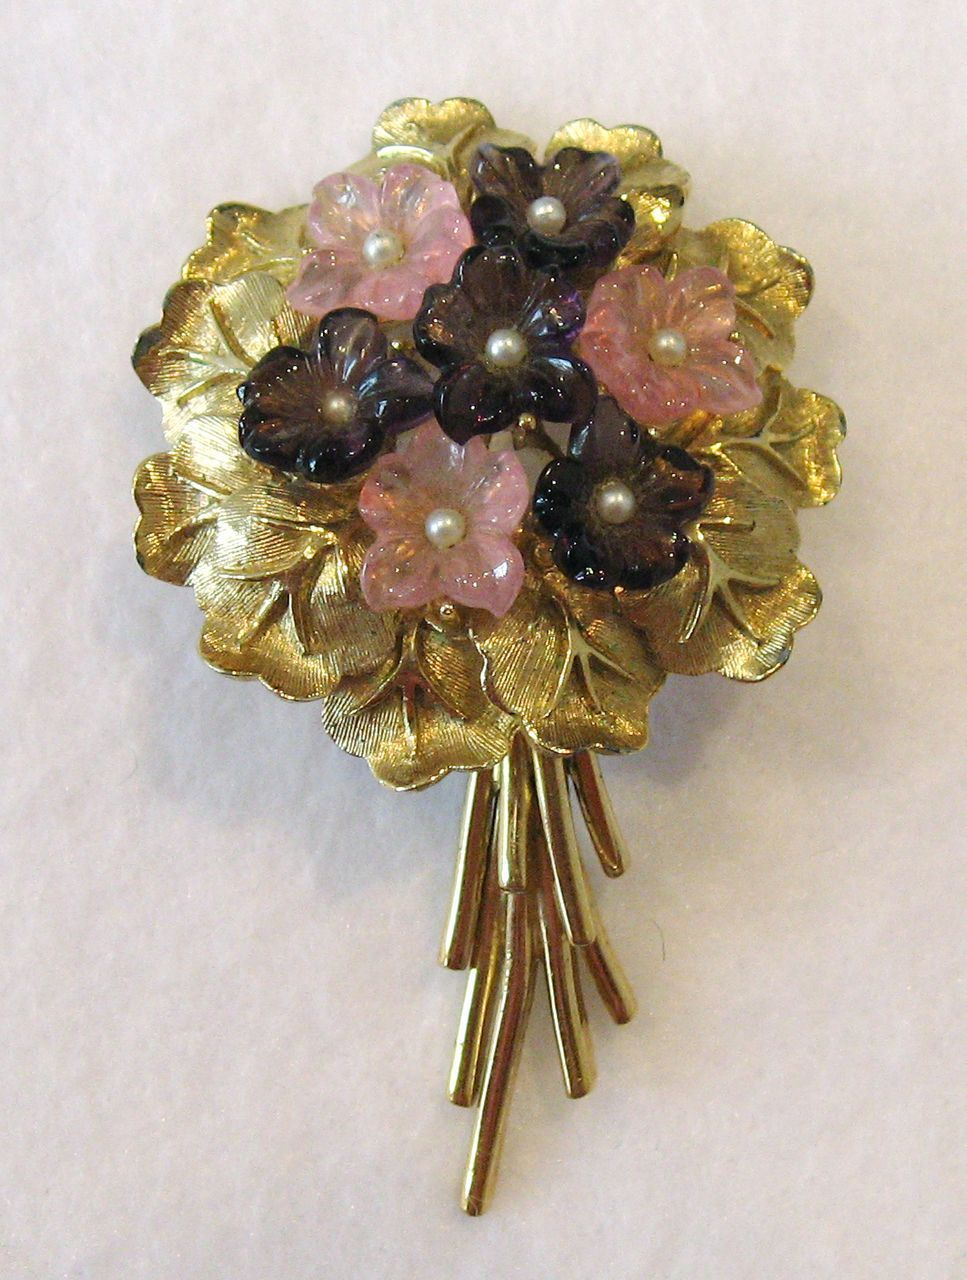 #986 Boucher Pink Purple Glass Flower Posy Pin Exclusively at Lee Caplan Vintage Collection on RubyLane